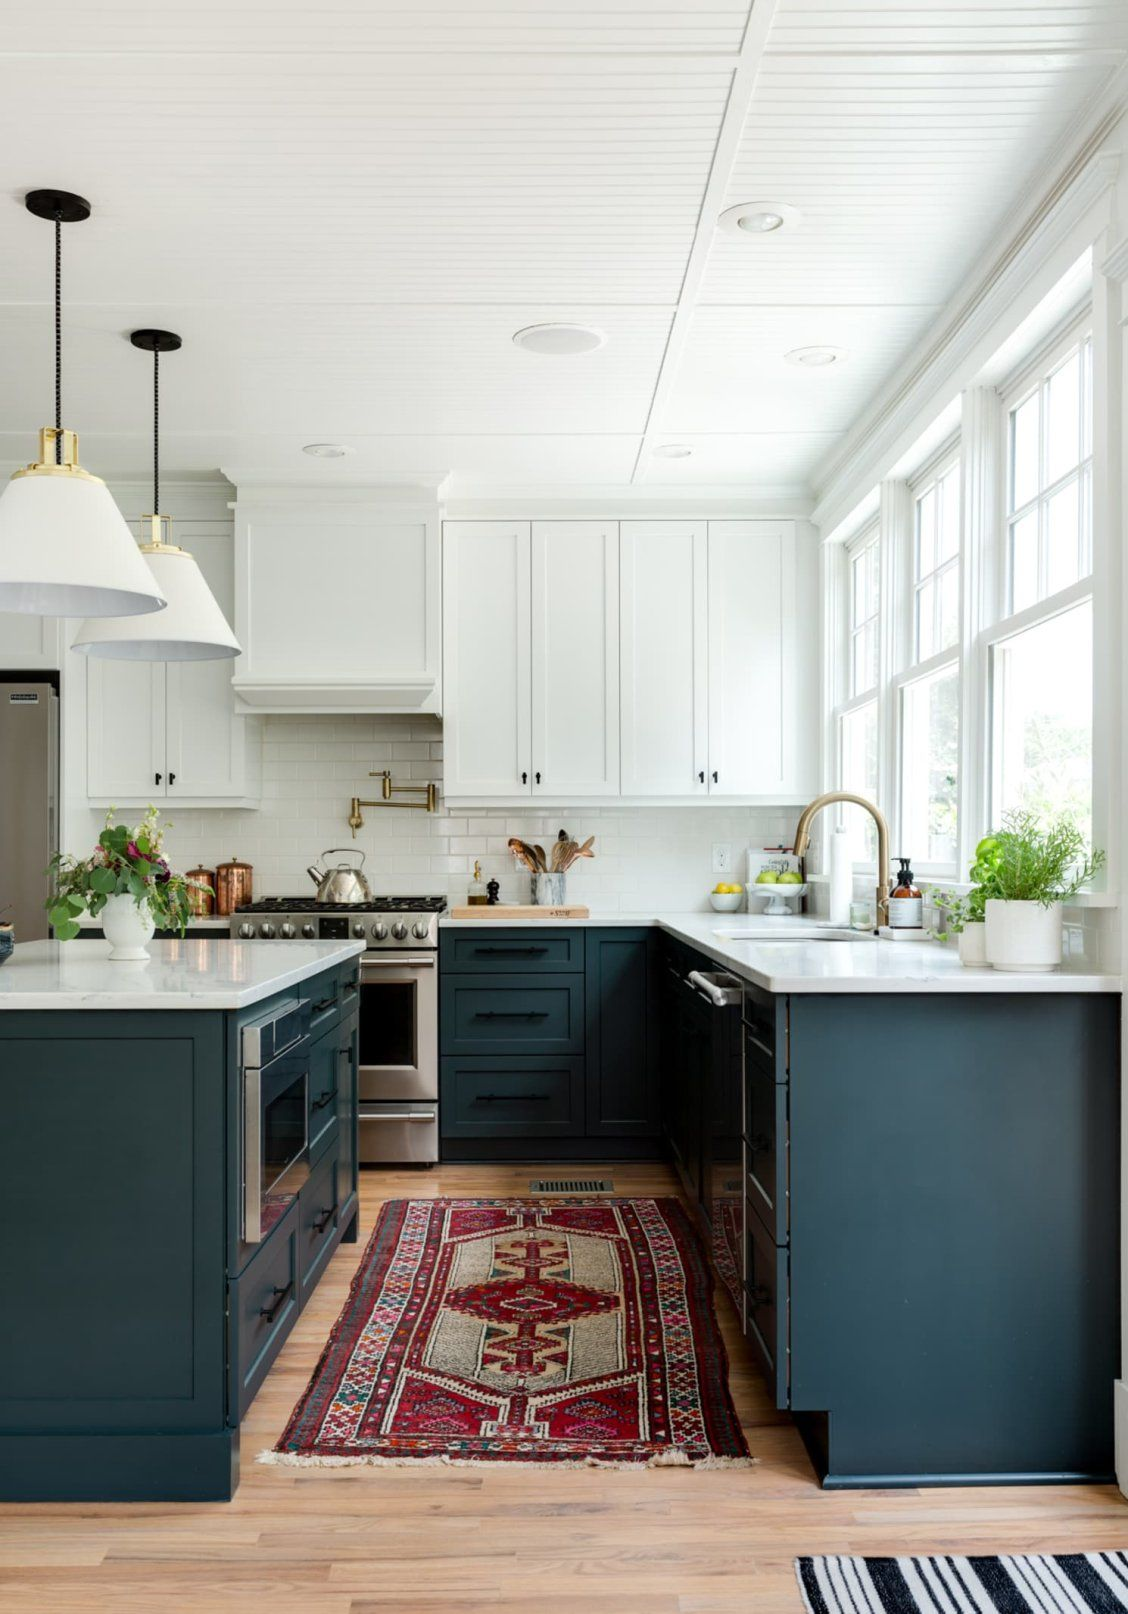 Before & After: A Run-Down House Gets a Total Renovation